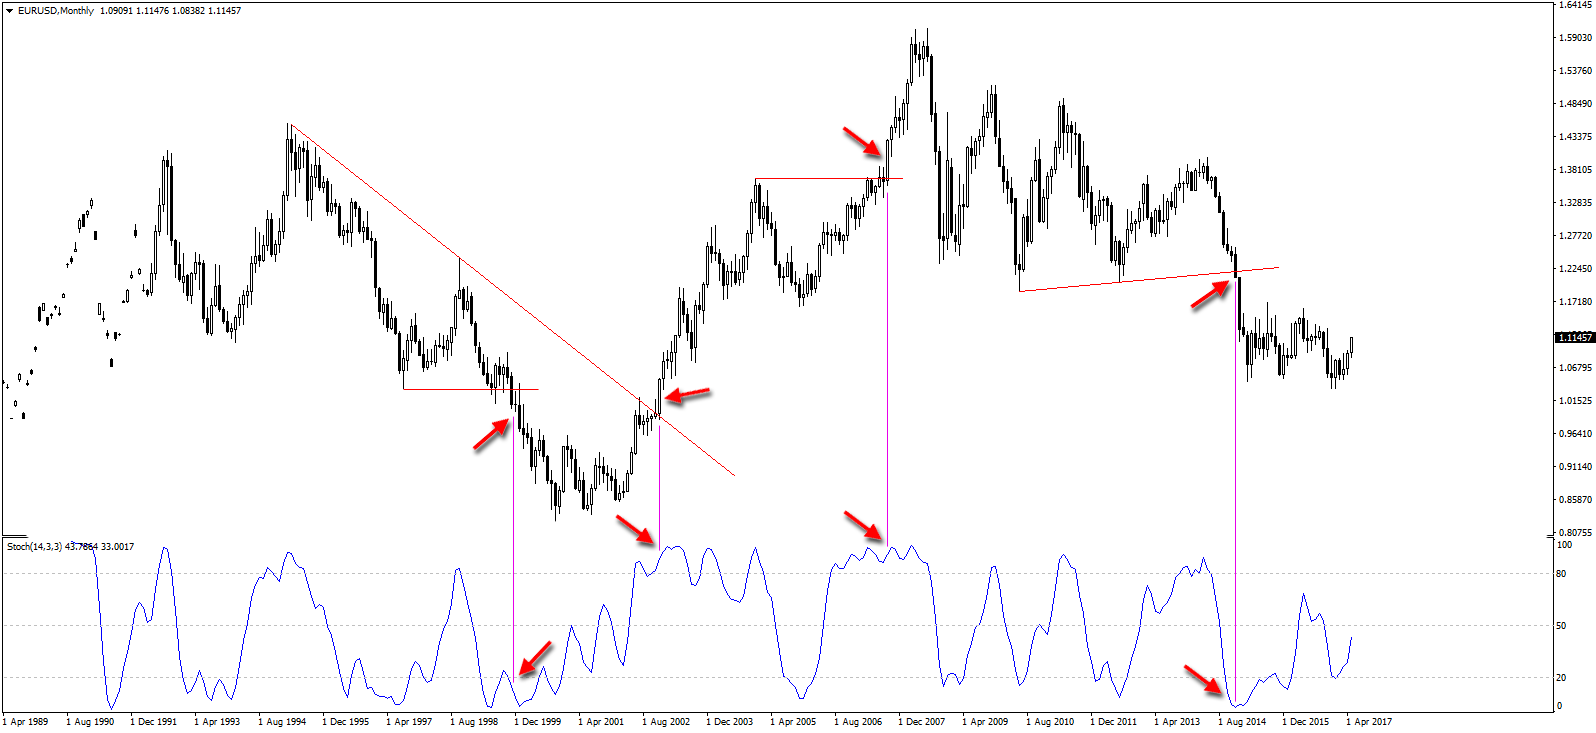 Stochastic Oscillator on EUR/USD Monthly Chart